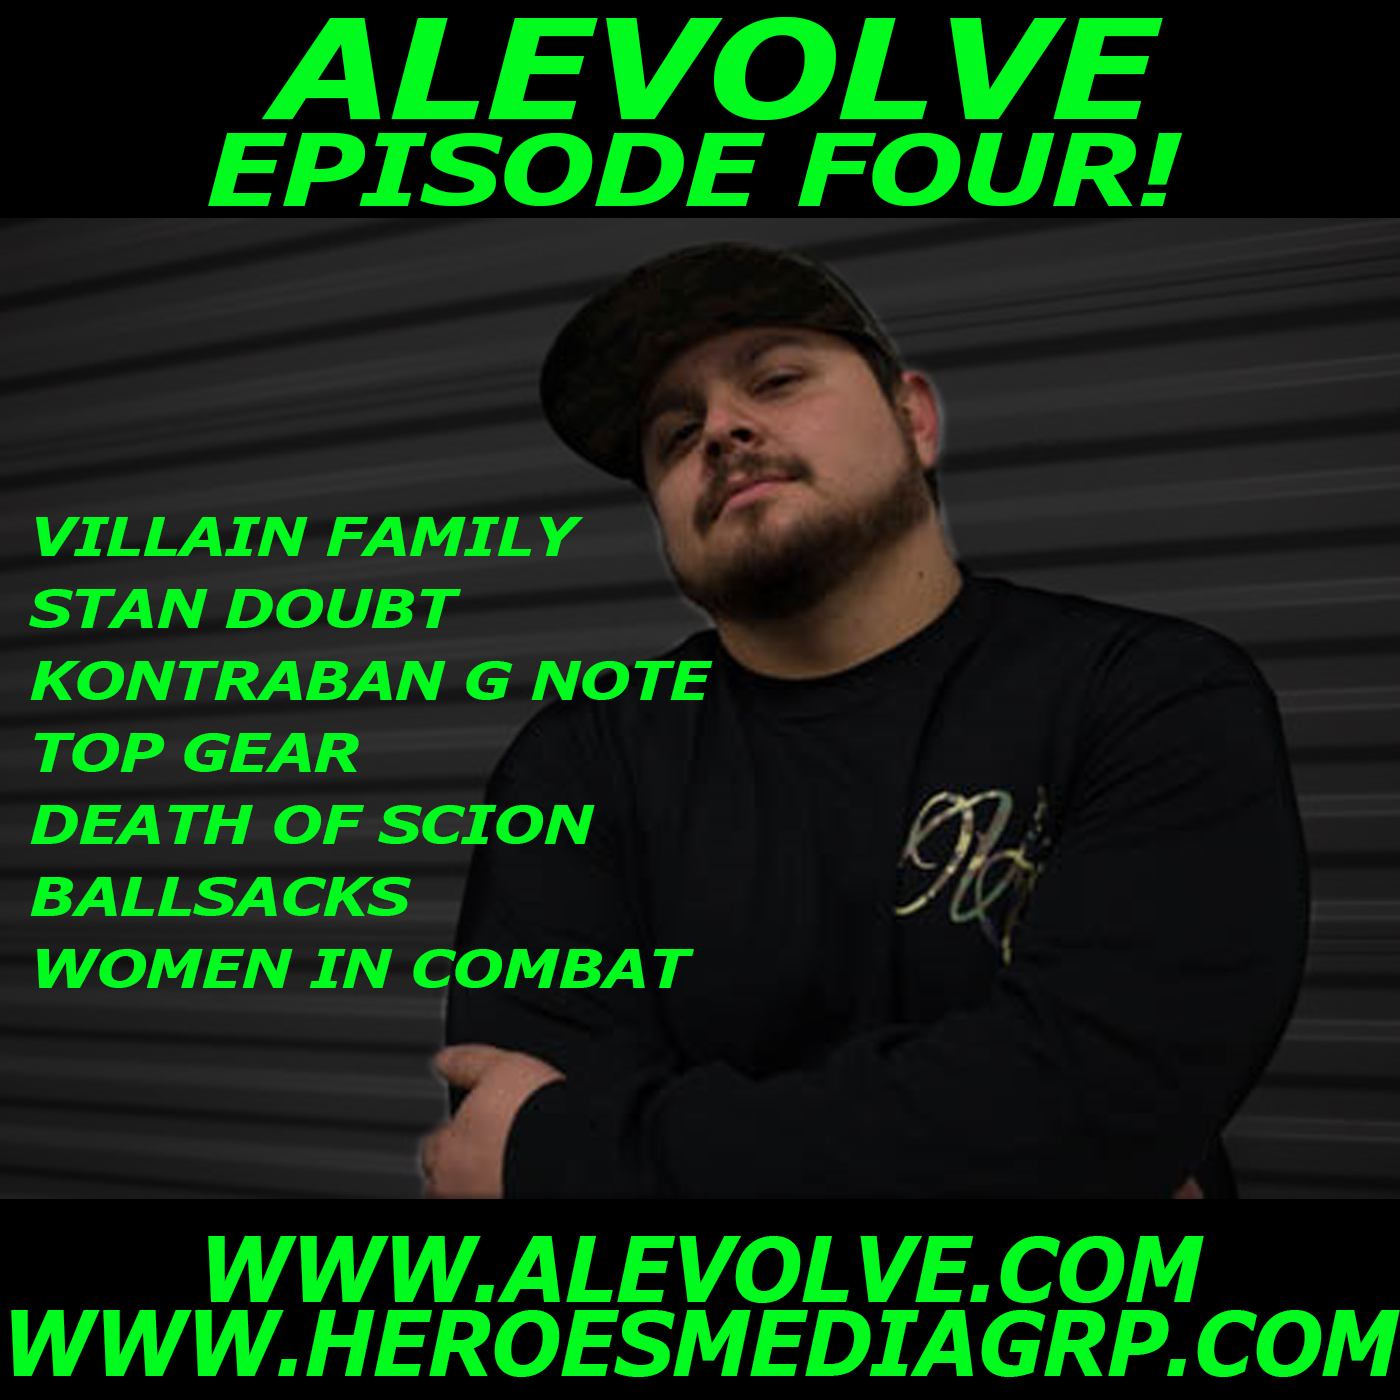 ALEVOLVE RADIO! Episode 4 - Top Gear, Scion, Balls Sacks, Stressed Out, Women in Combat